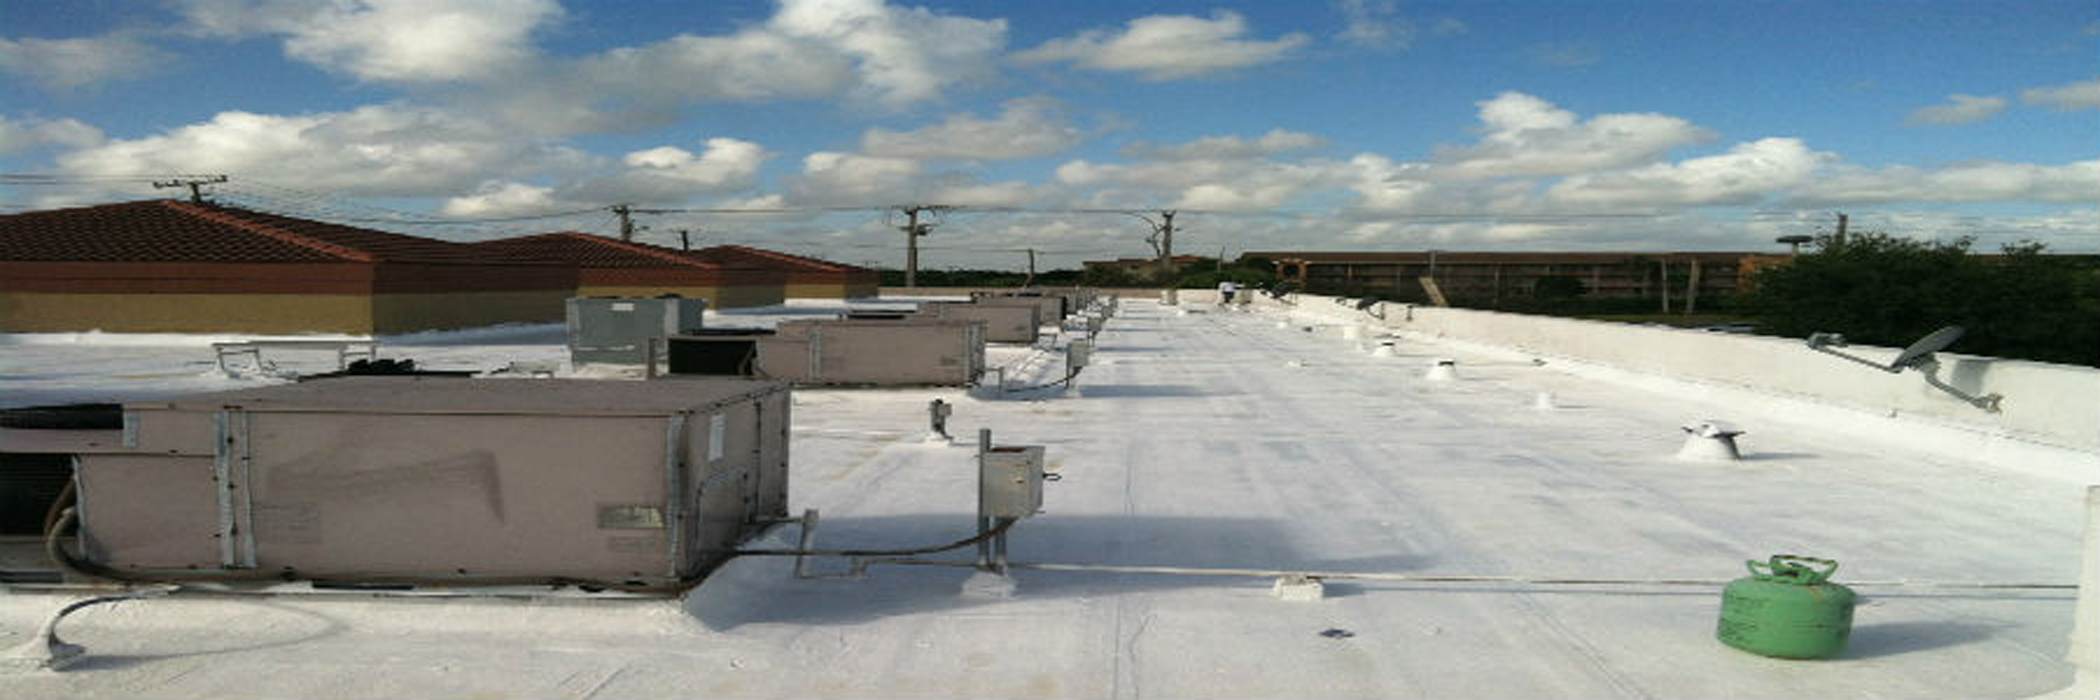 The Roof Store Roof Painting Contractor Roof Restoration